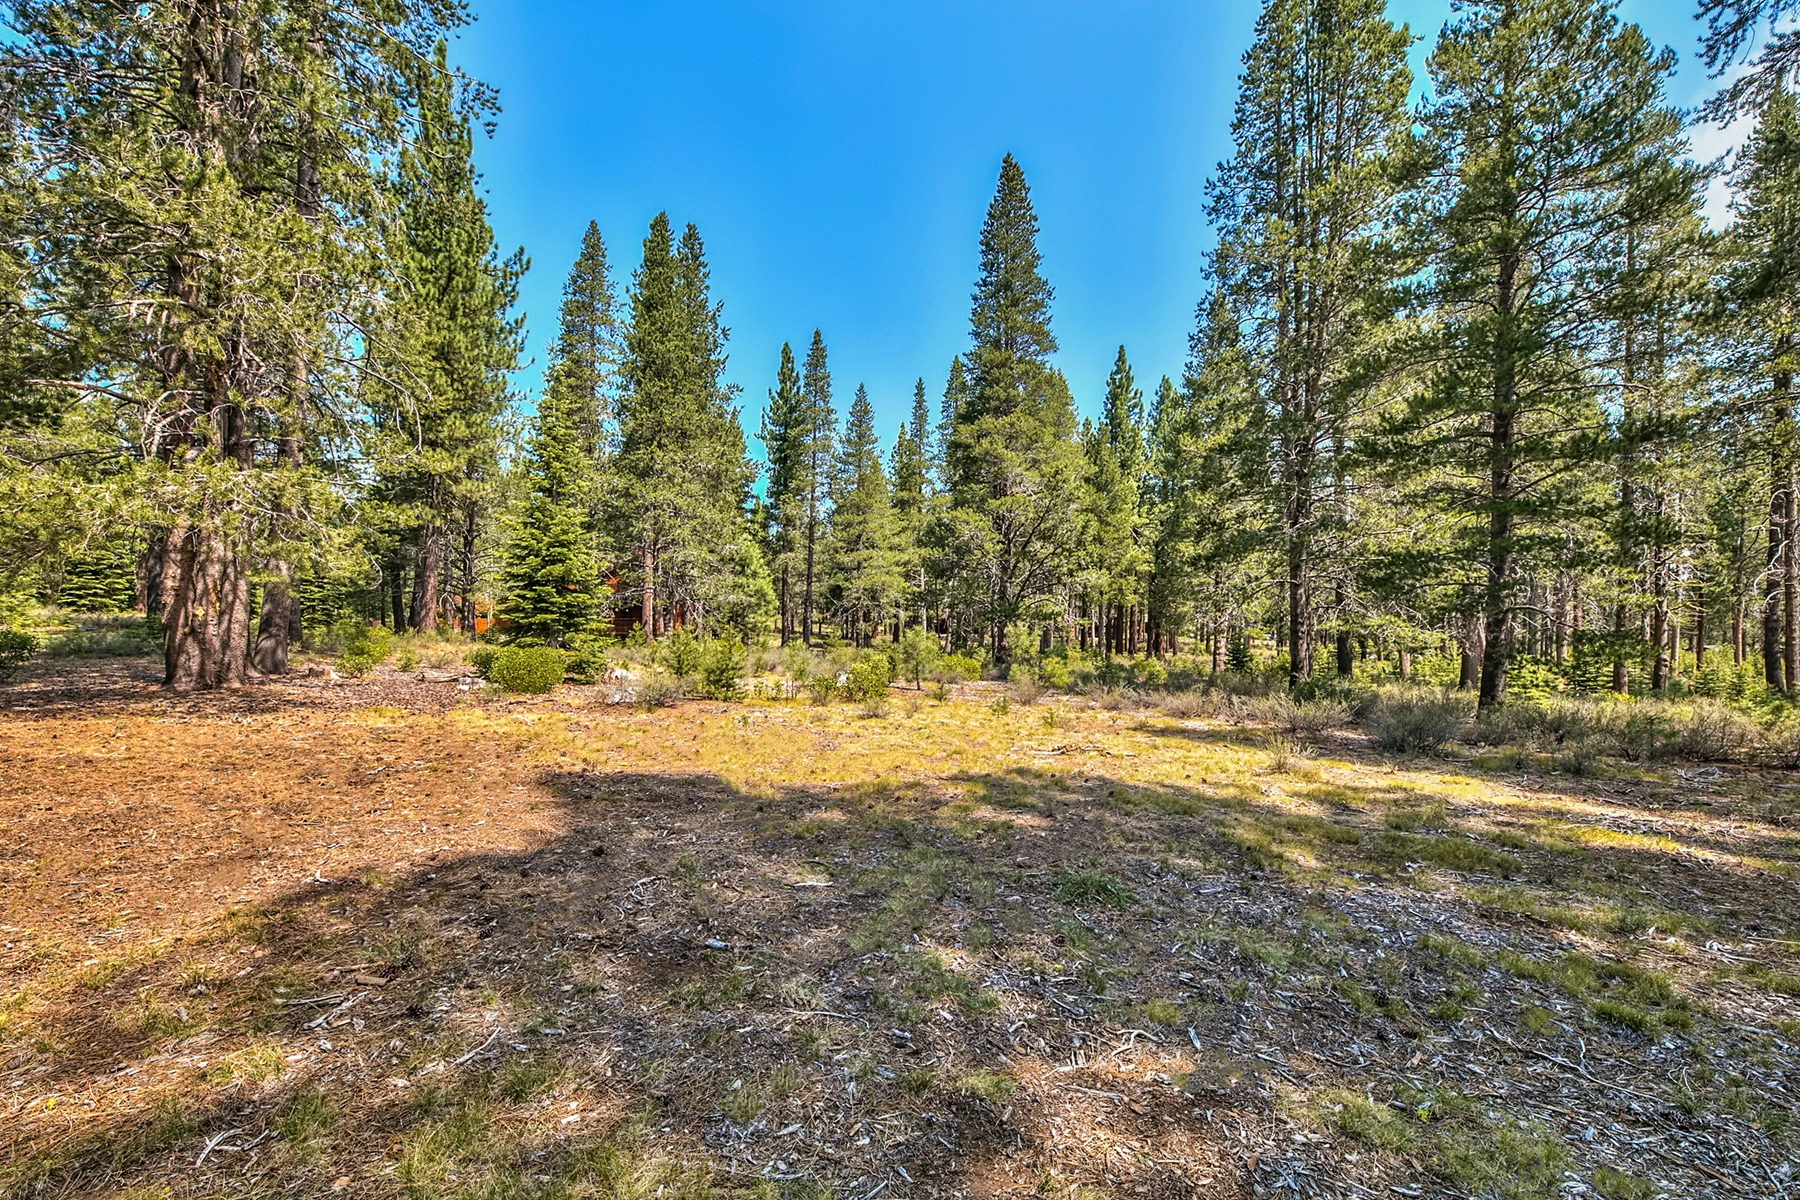 Additional photo for property listing at 11891 Bottcher  Loop, Truckee, CA 96161 11891 Bottcher  Loop Truckee, California 96161 United States